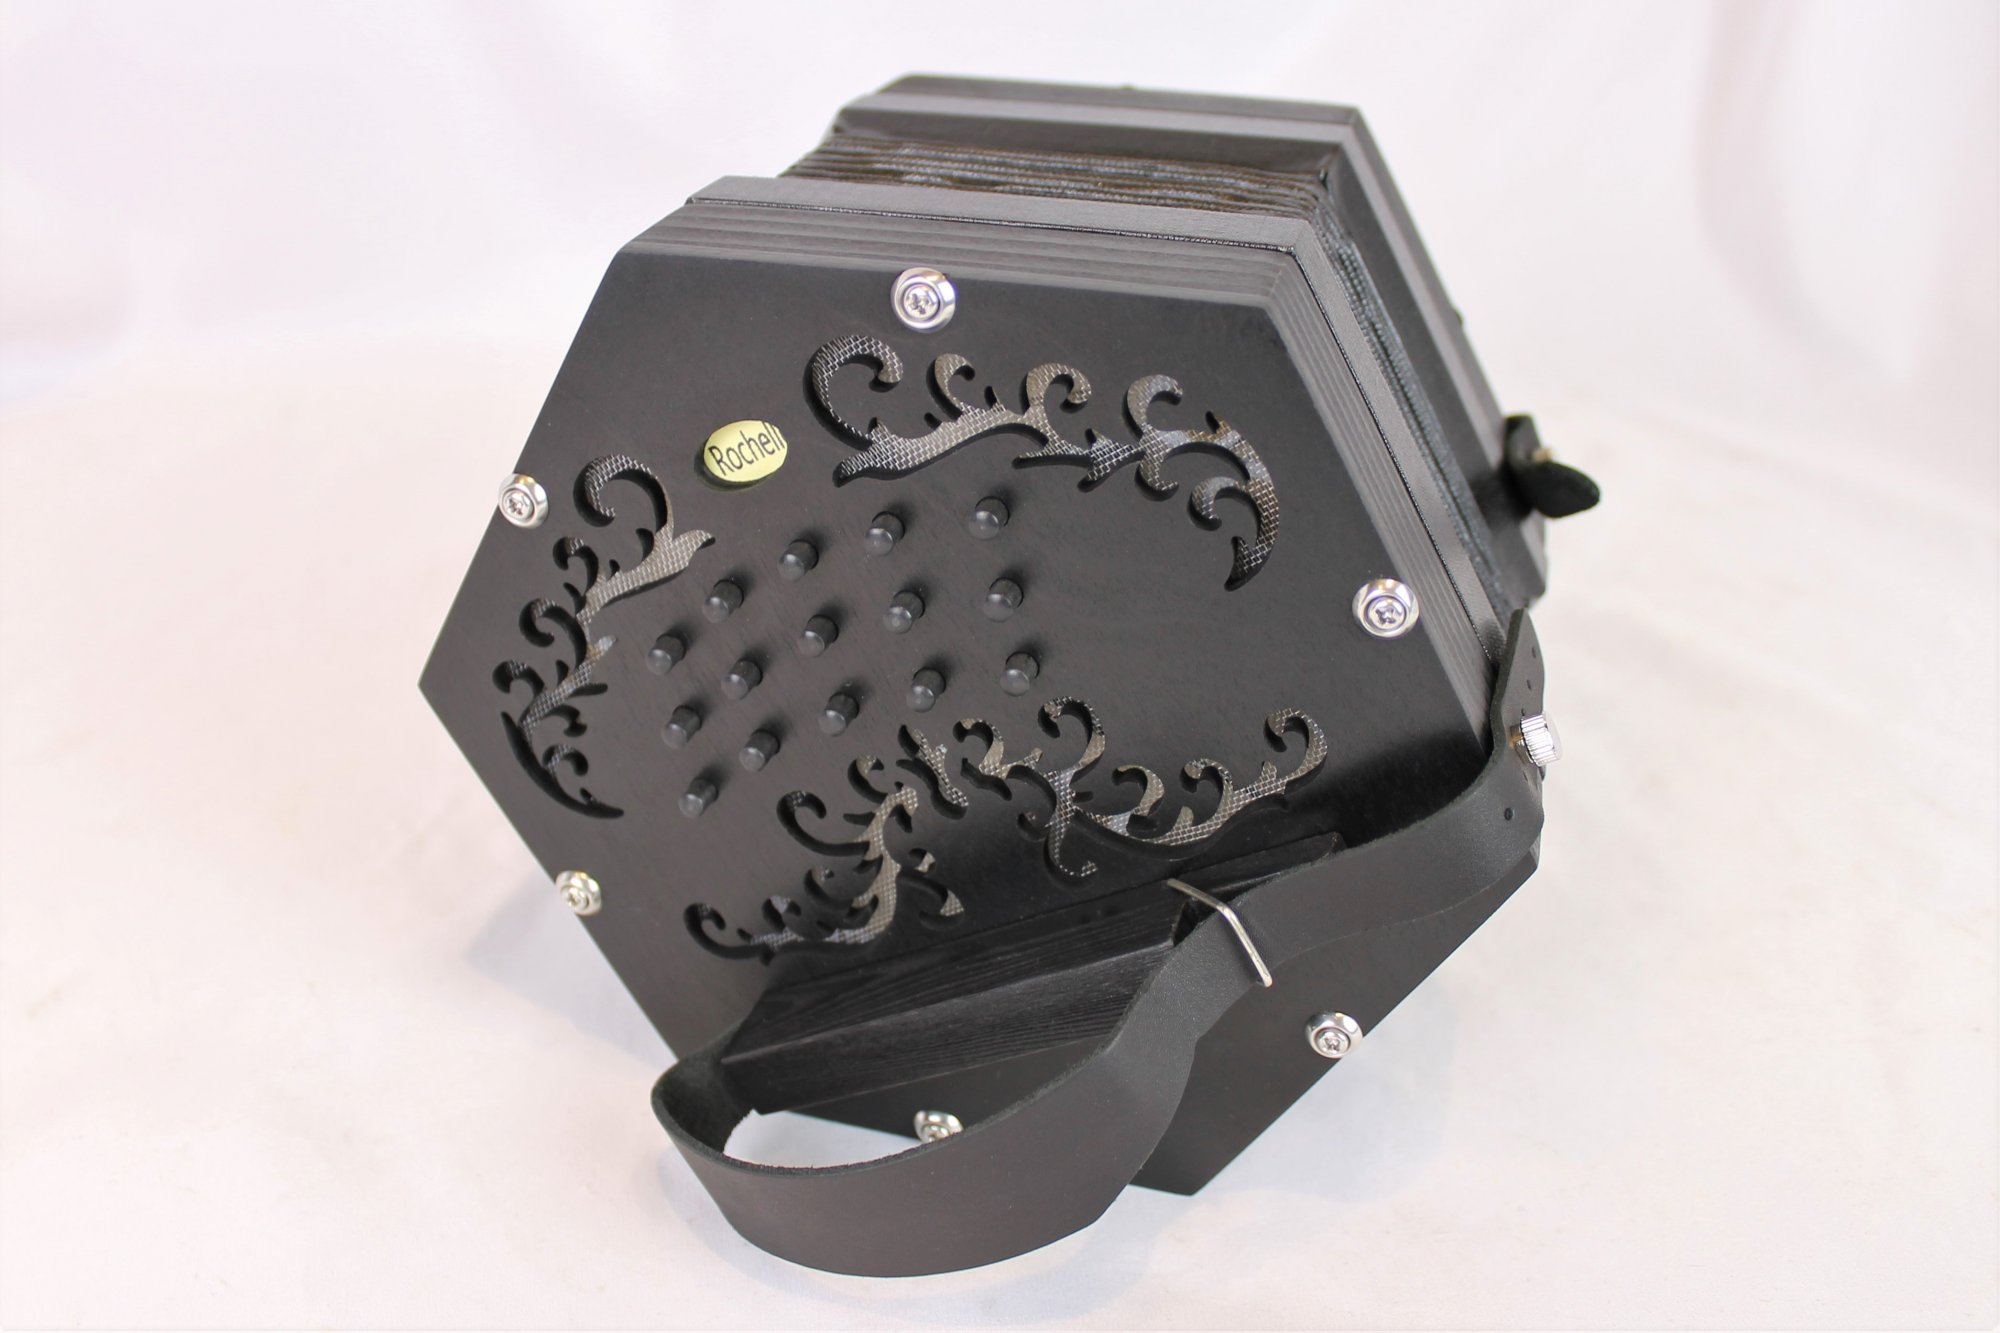 NEW Black Concertina Connection Rochelle-2 Anglo CG M 30